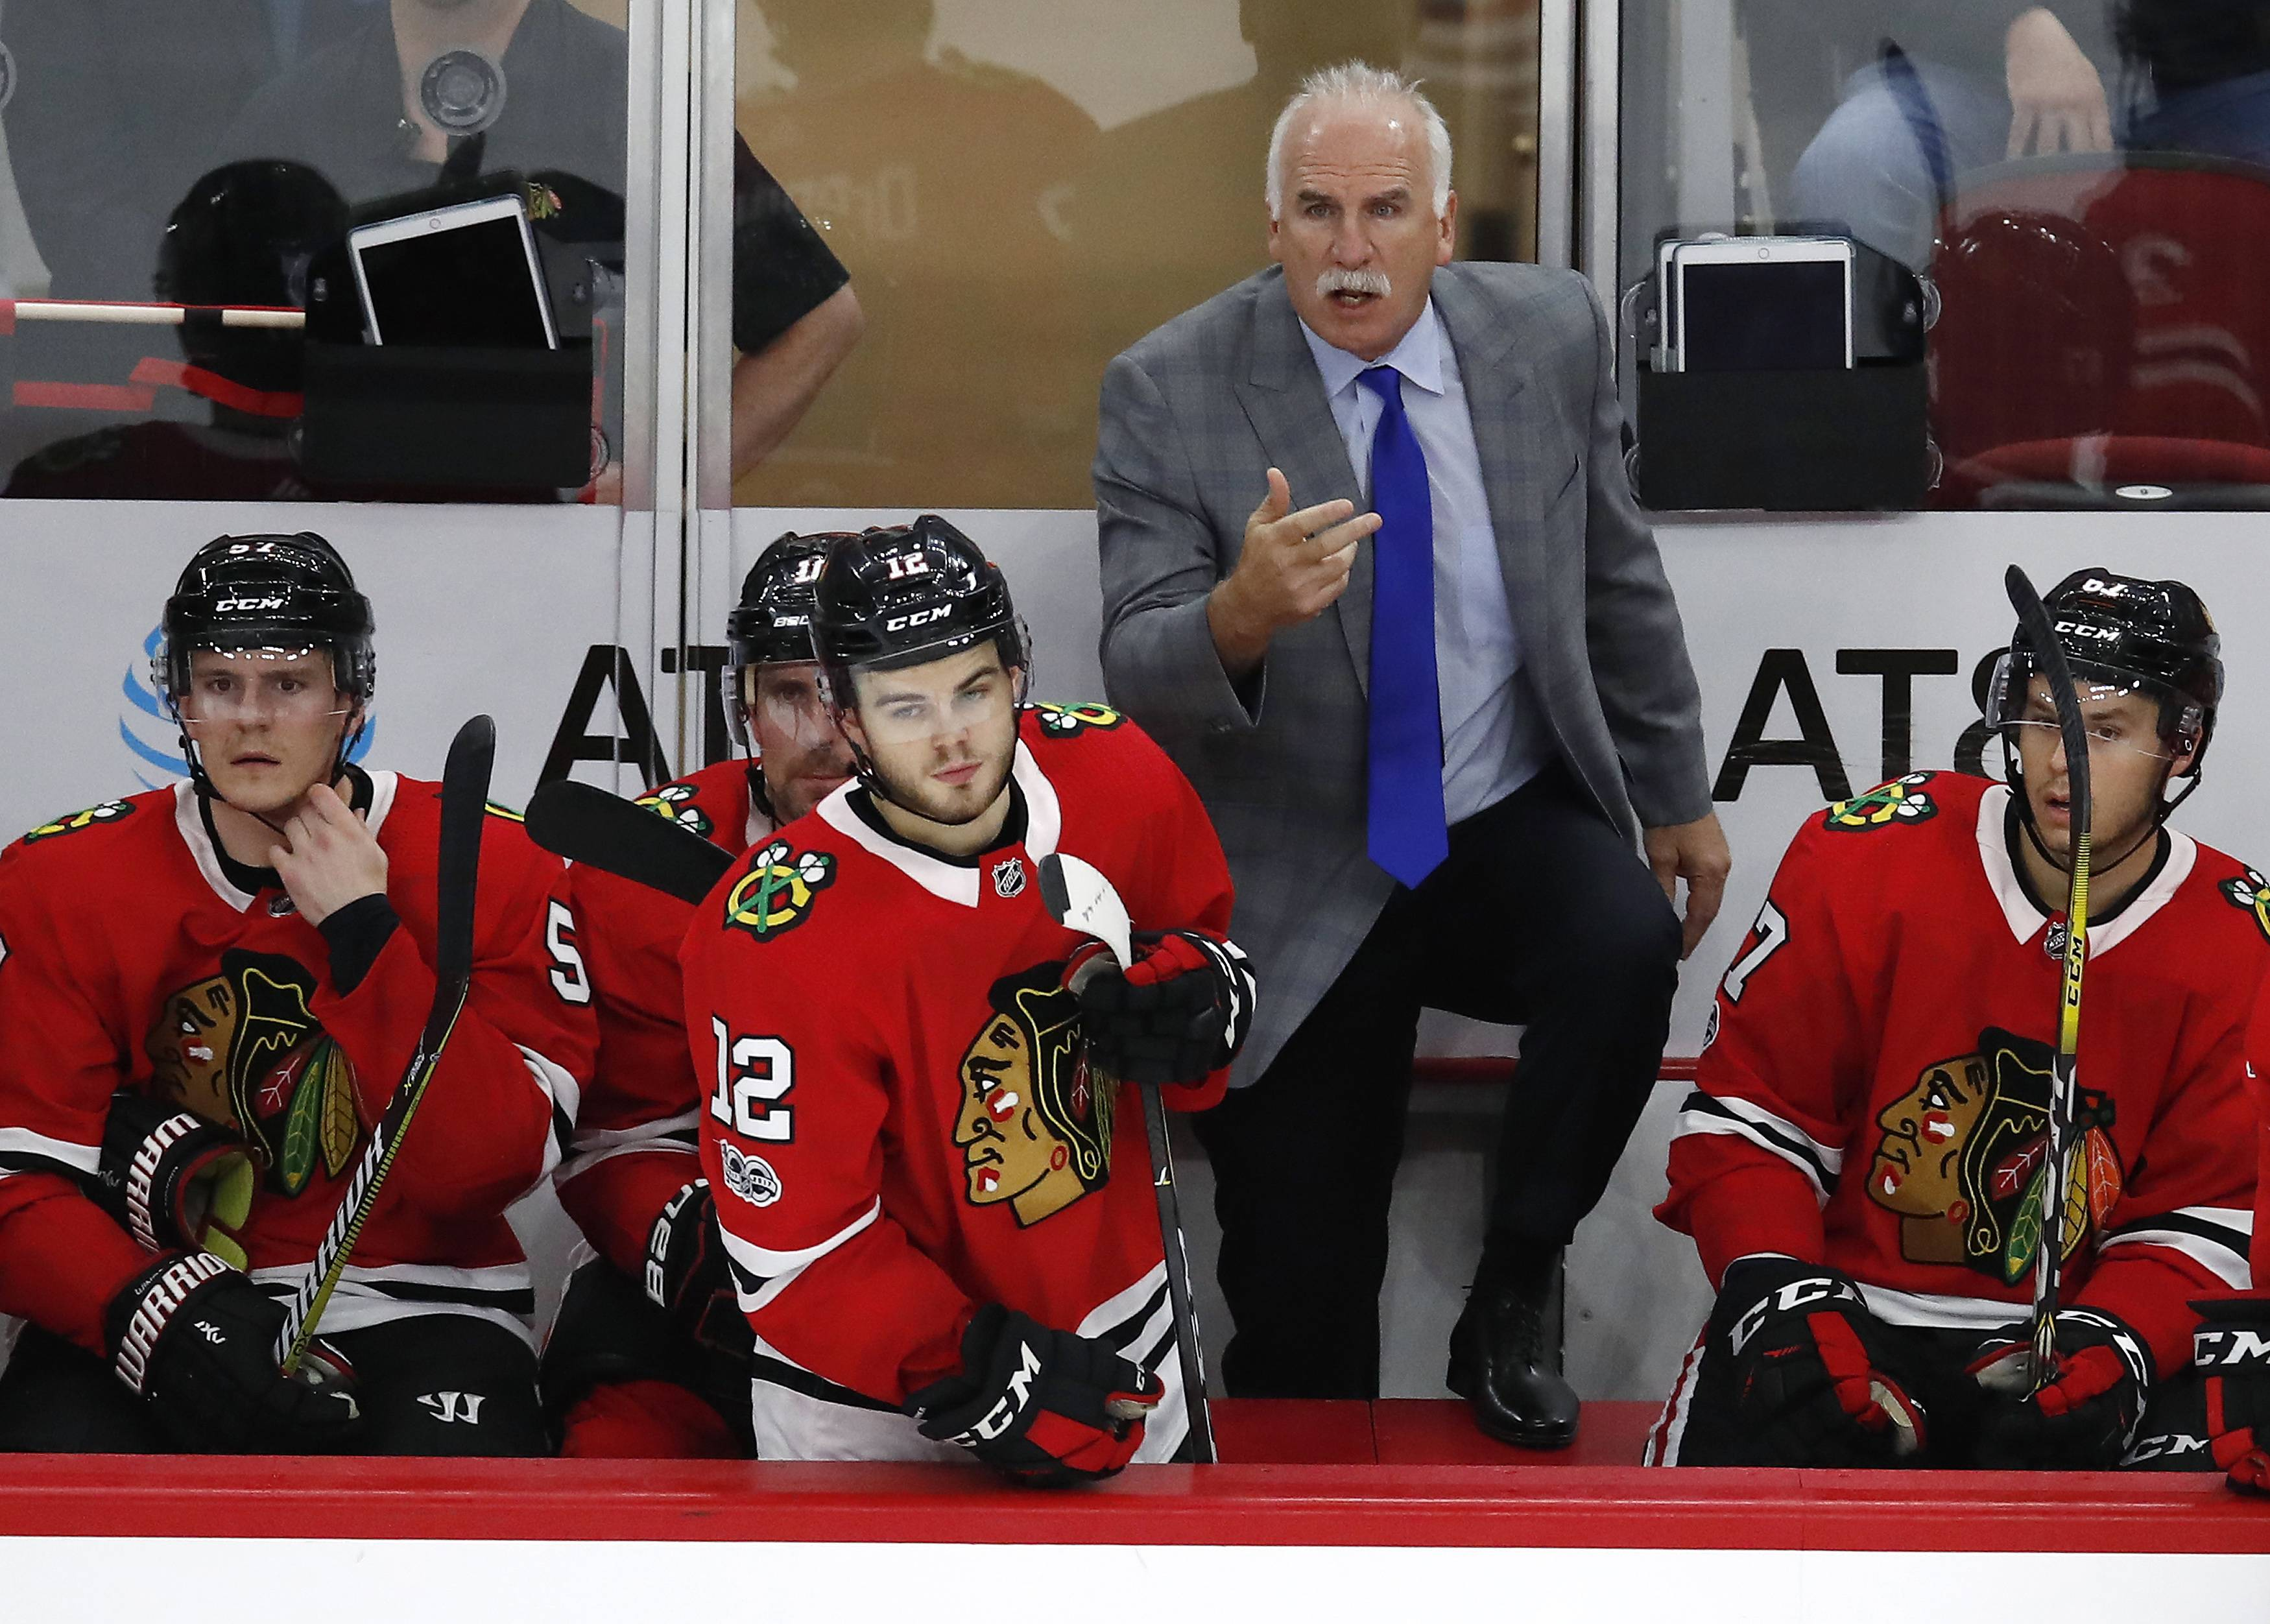 Coach Joel Quenneville and the Chicago Blackhawks have a few days to work on the power play before visiting St. Louis on Wednesday night.